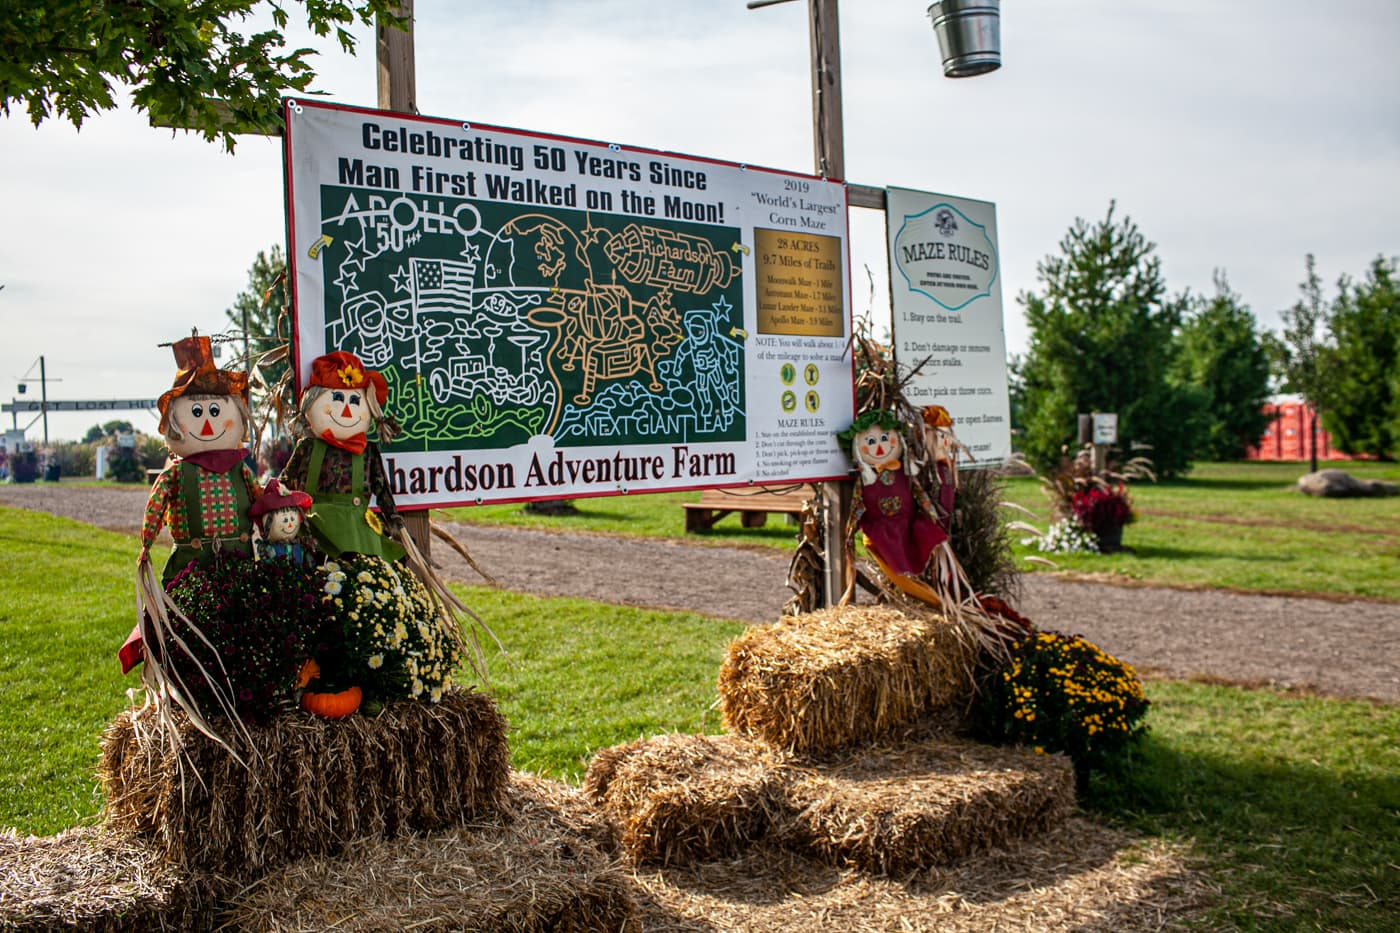 The World's Largest Corn Maze at Richardson Adventure Farm in Spring Grove, Illinois.